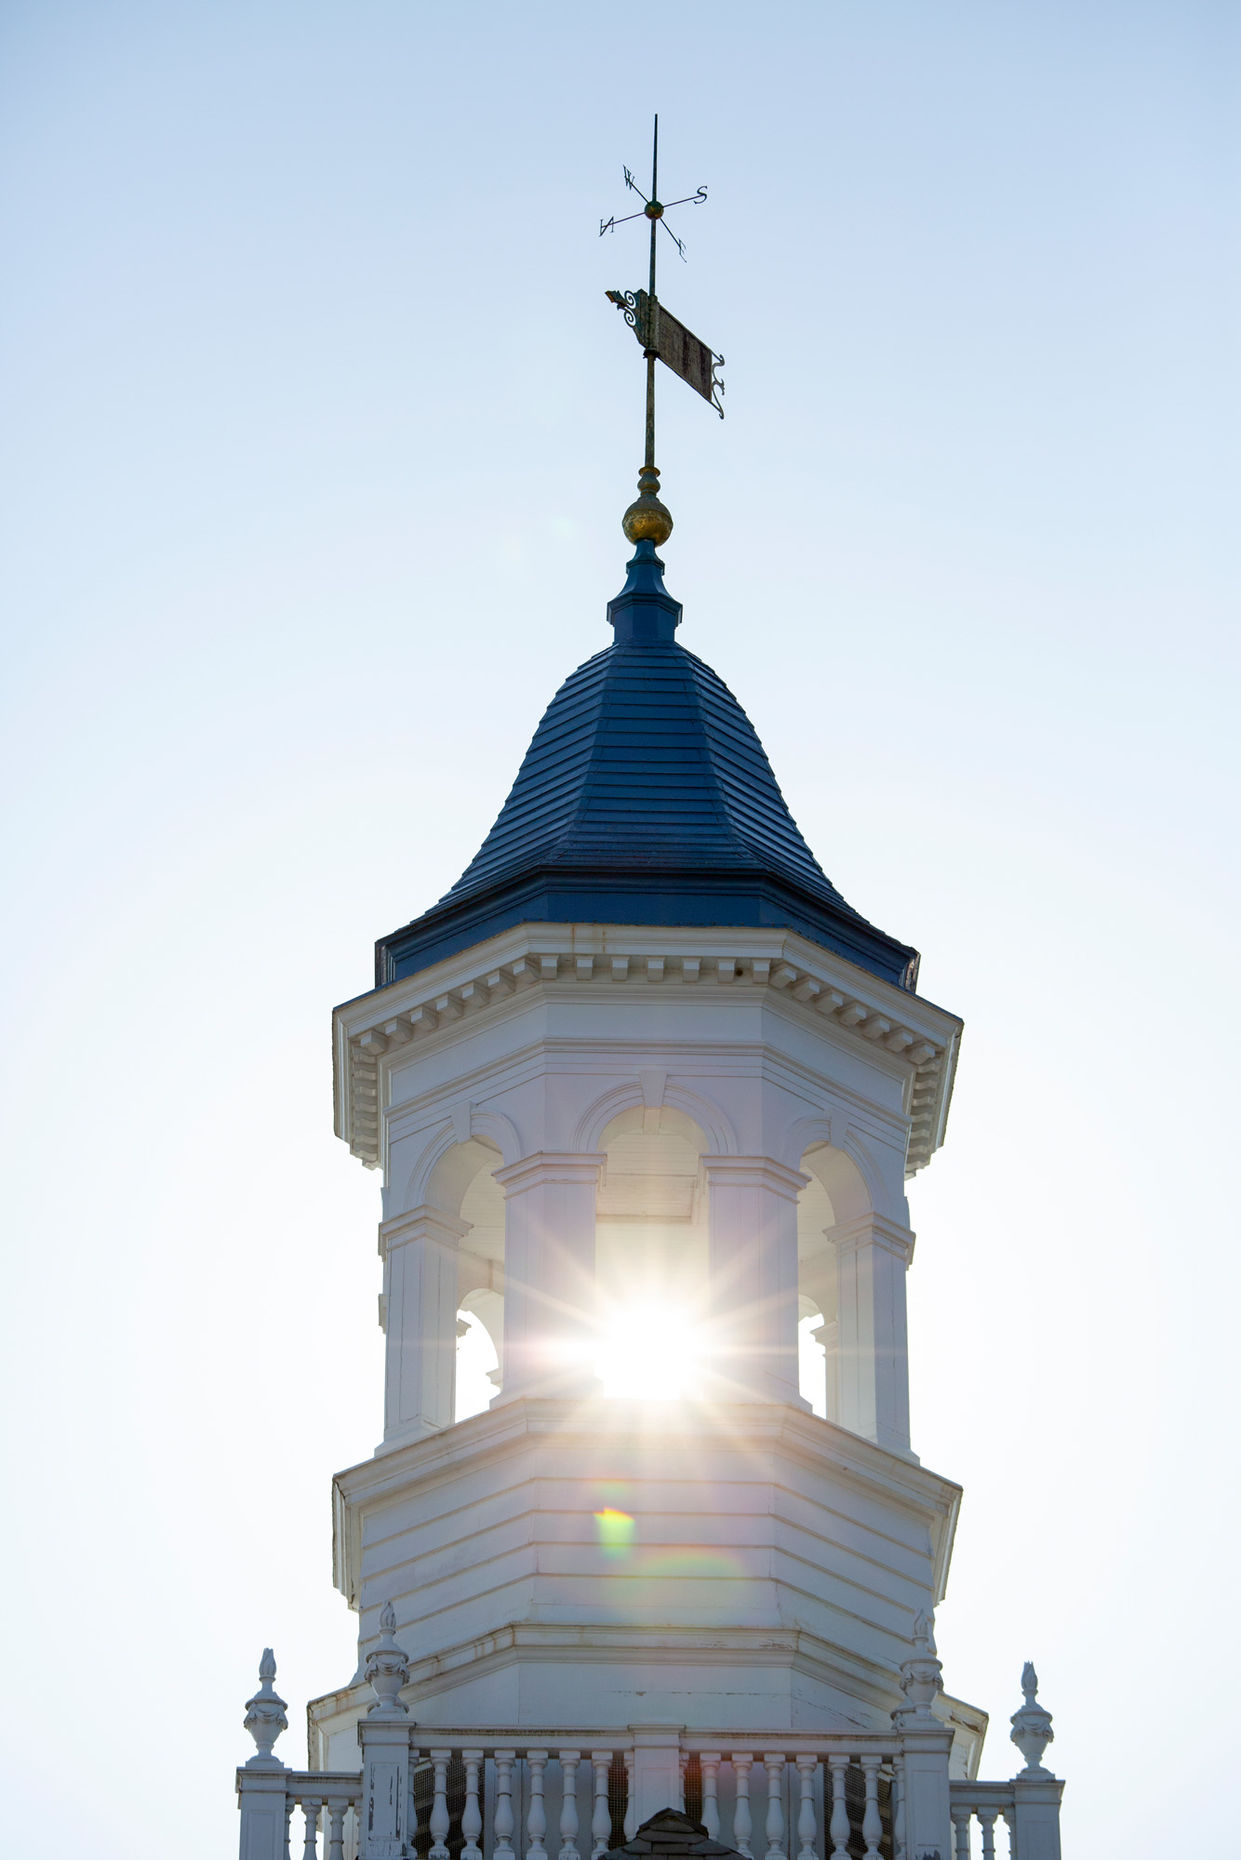 Sun shining through the Barshinger Cupola